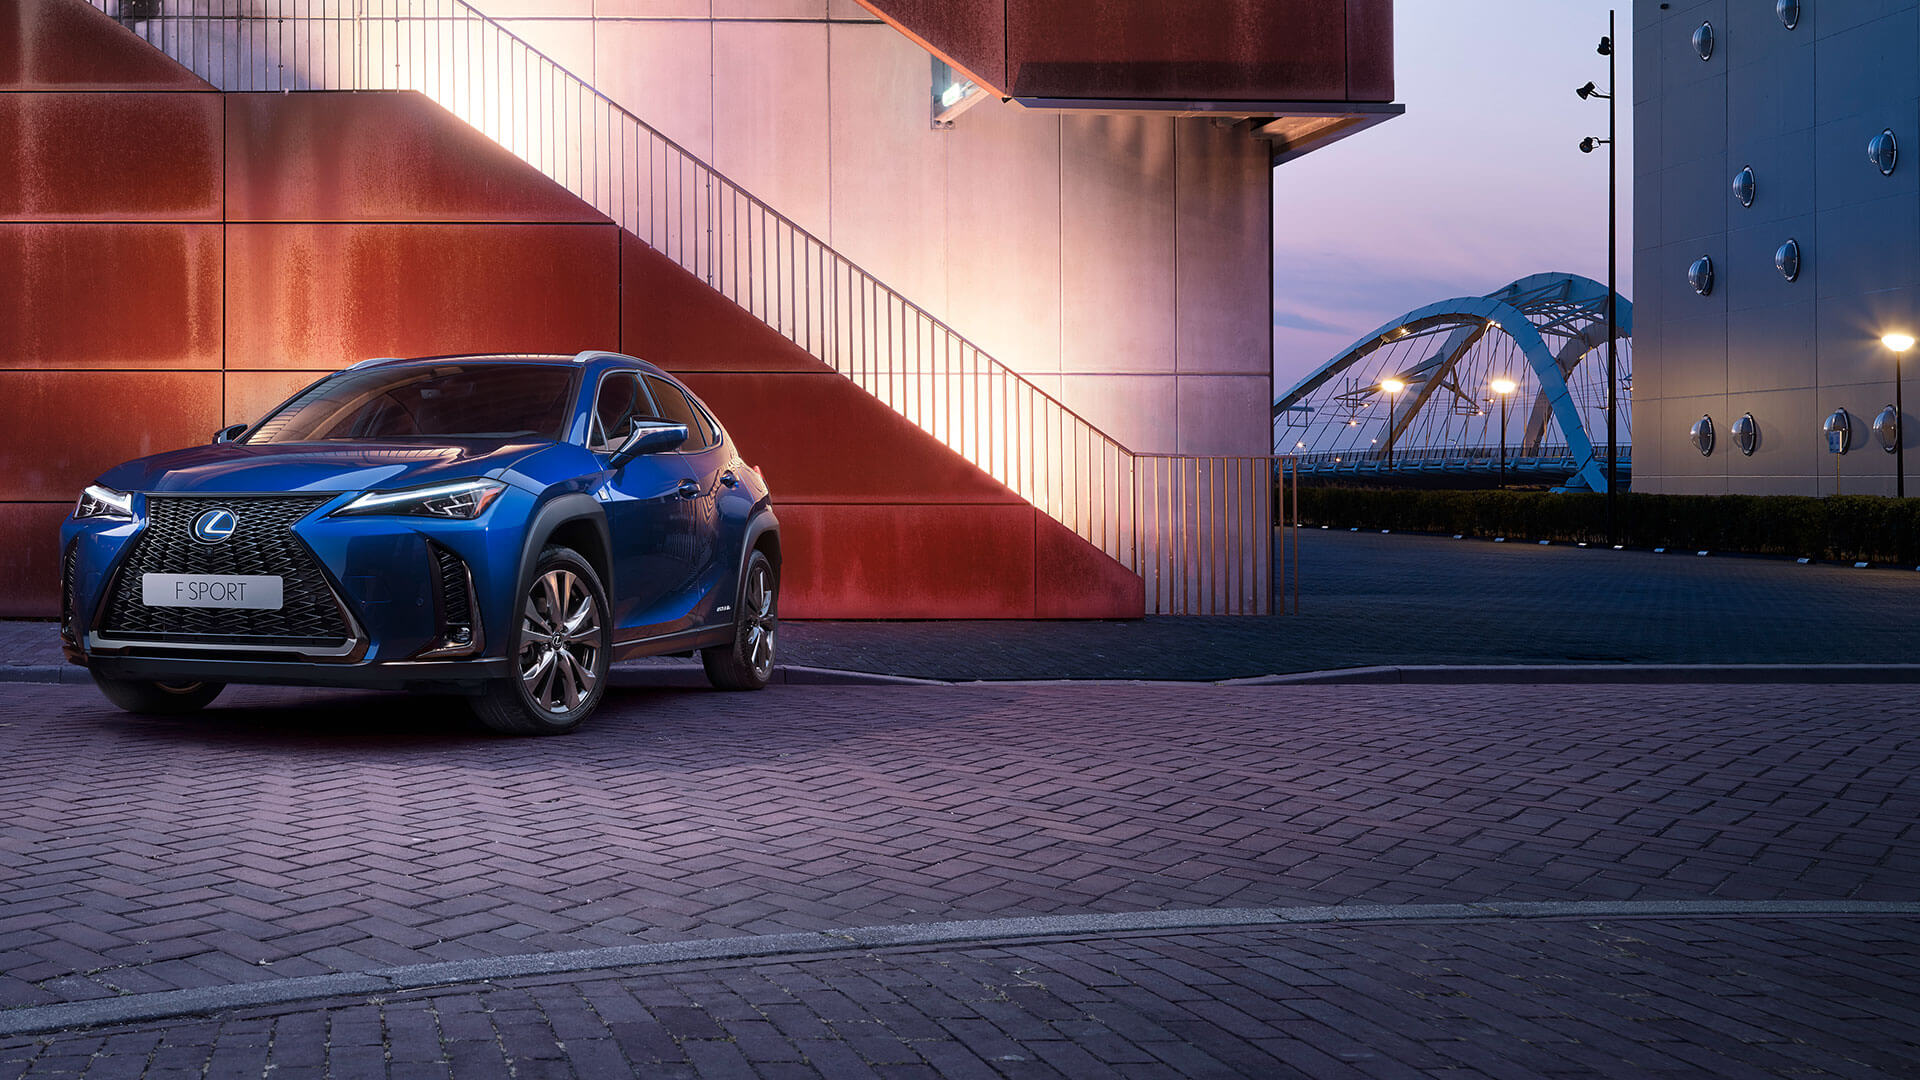 019 lexus ux presales key features 1920x1080 v2